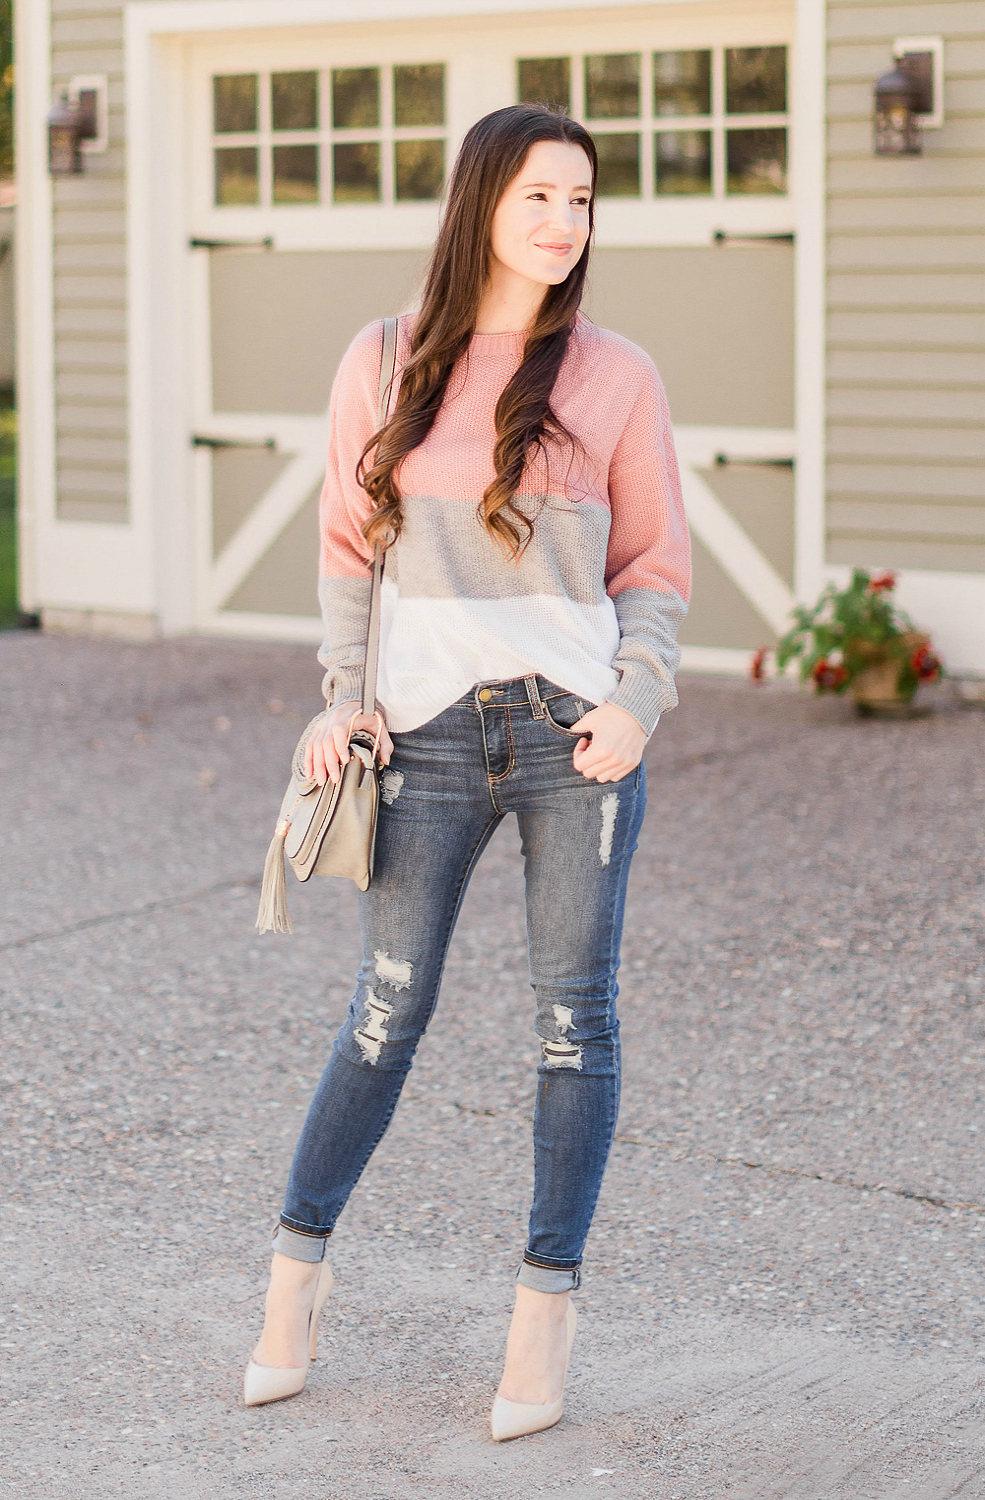 neutral color block sweater outfit by affordable fashion blogger Stephanie Ziajka from Diary of a Debutante, Chloe Hudson dupe bag, Chloe Hudson designer dupe bag, Chloe dupe bag, Tom Clovers Saddle Crossbody, Liverpool Jeans review, distressed Liverpool Jeans